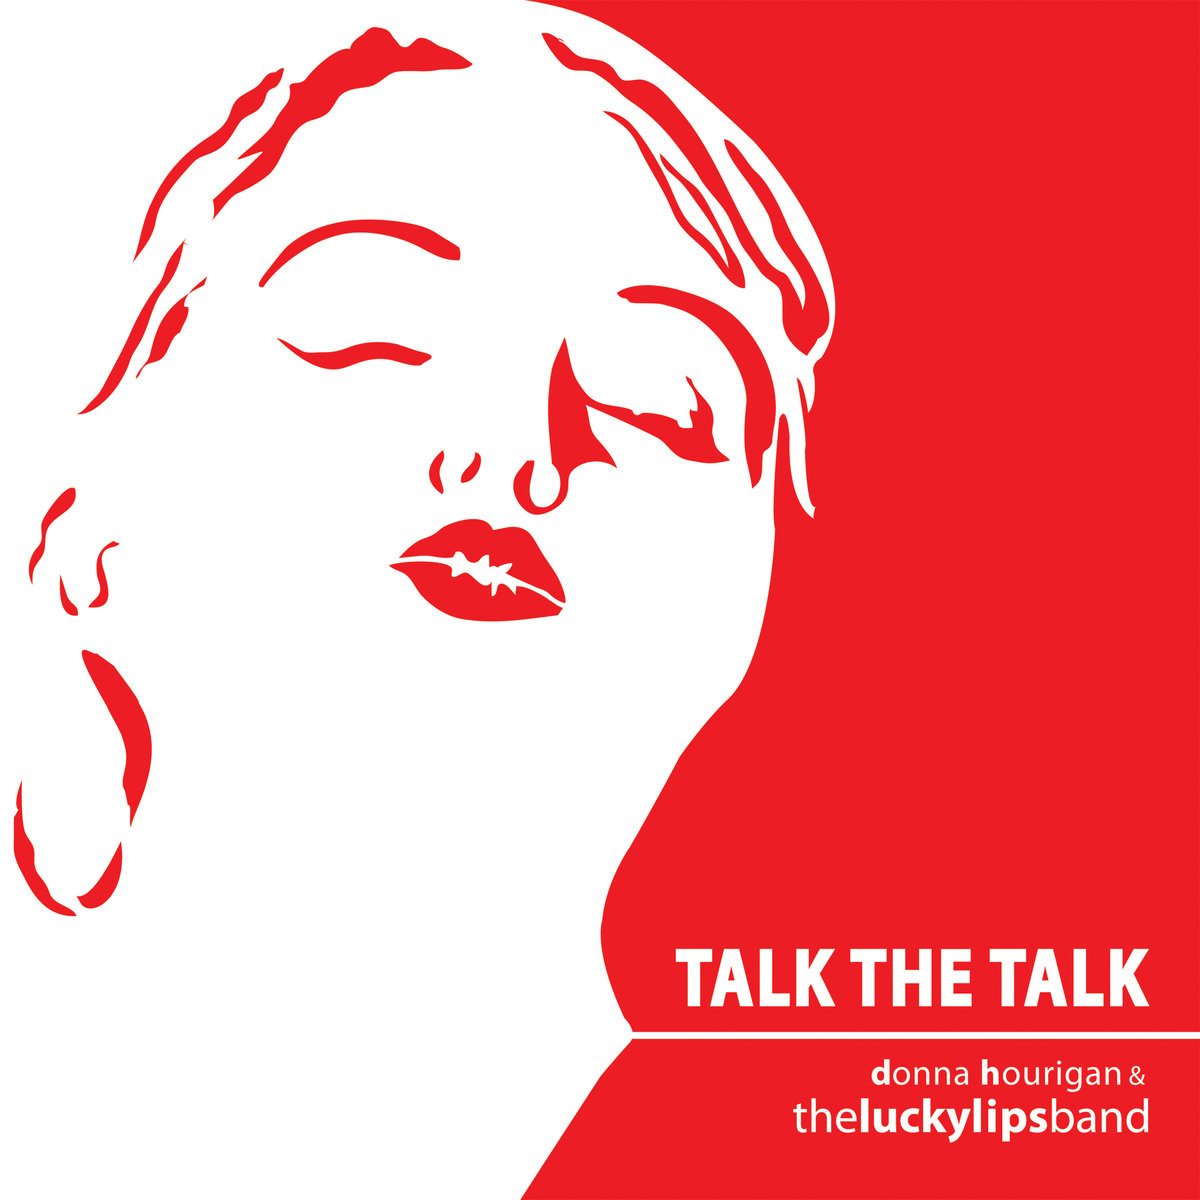 donna-hourigan-the-lucky-lips-band-talk-the-talk